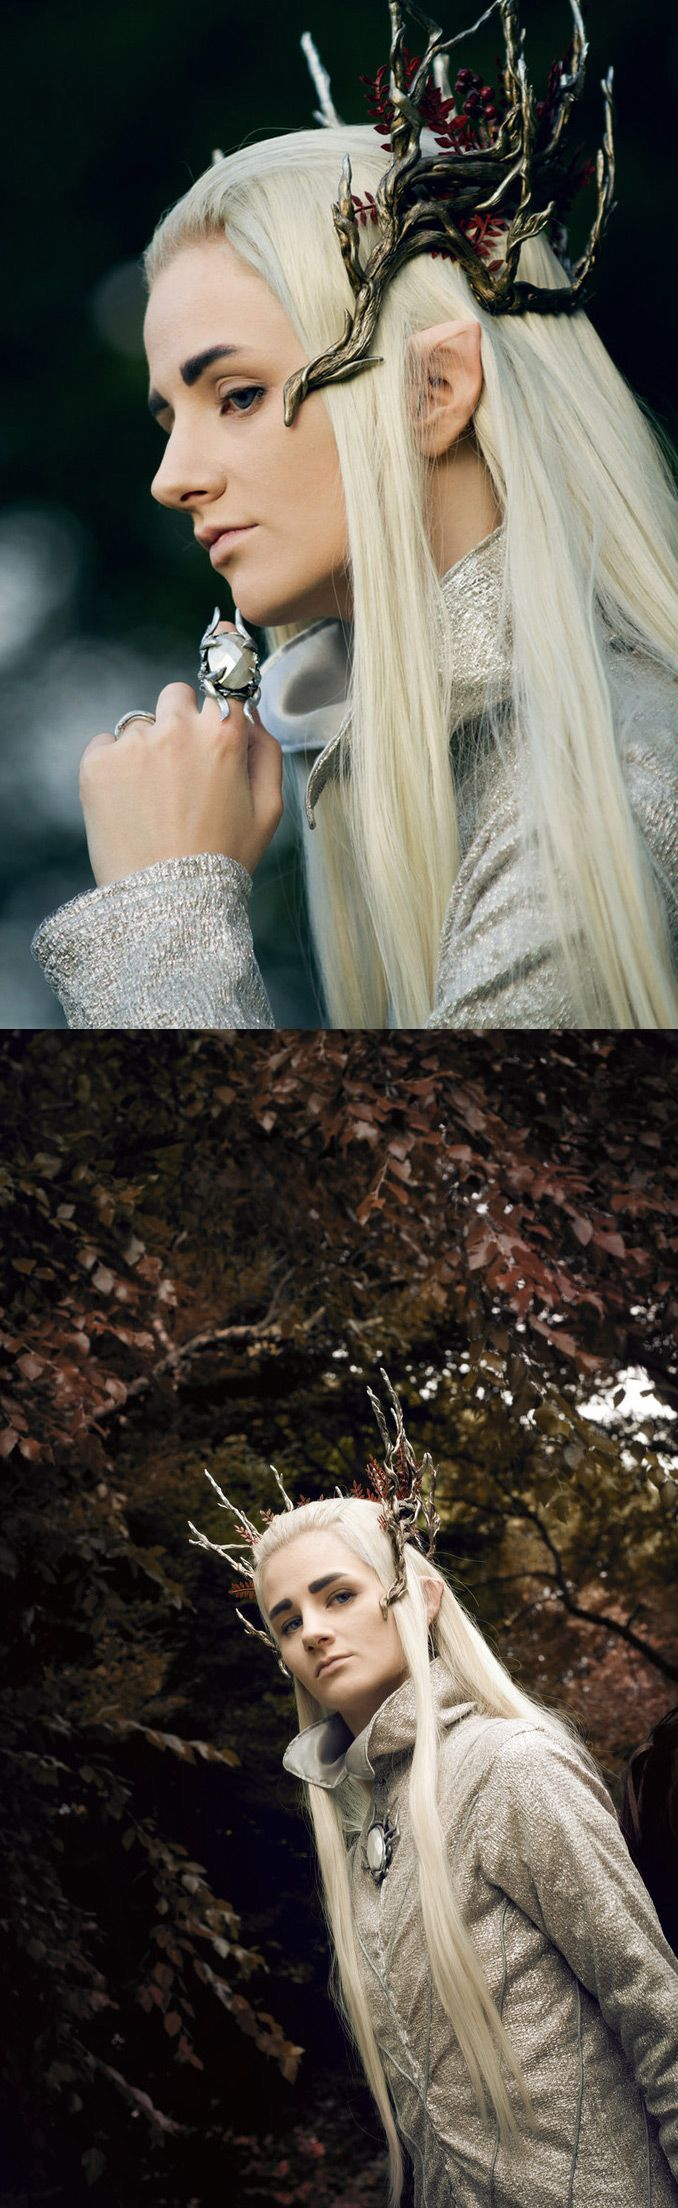 Thranduil, Elven King of Mirkwood - The Hobbit: Desolation of Smaug